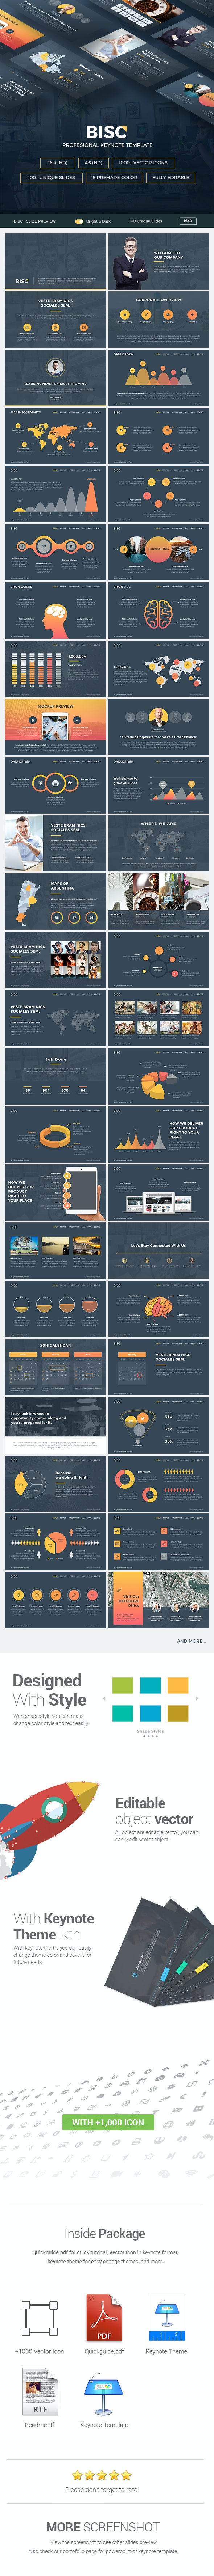 Bisc - Professional Pitch Deck Keynote Template - Business Keynote Templates